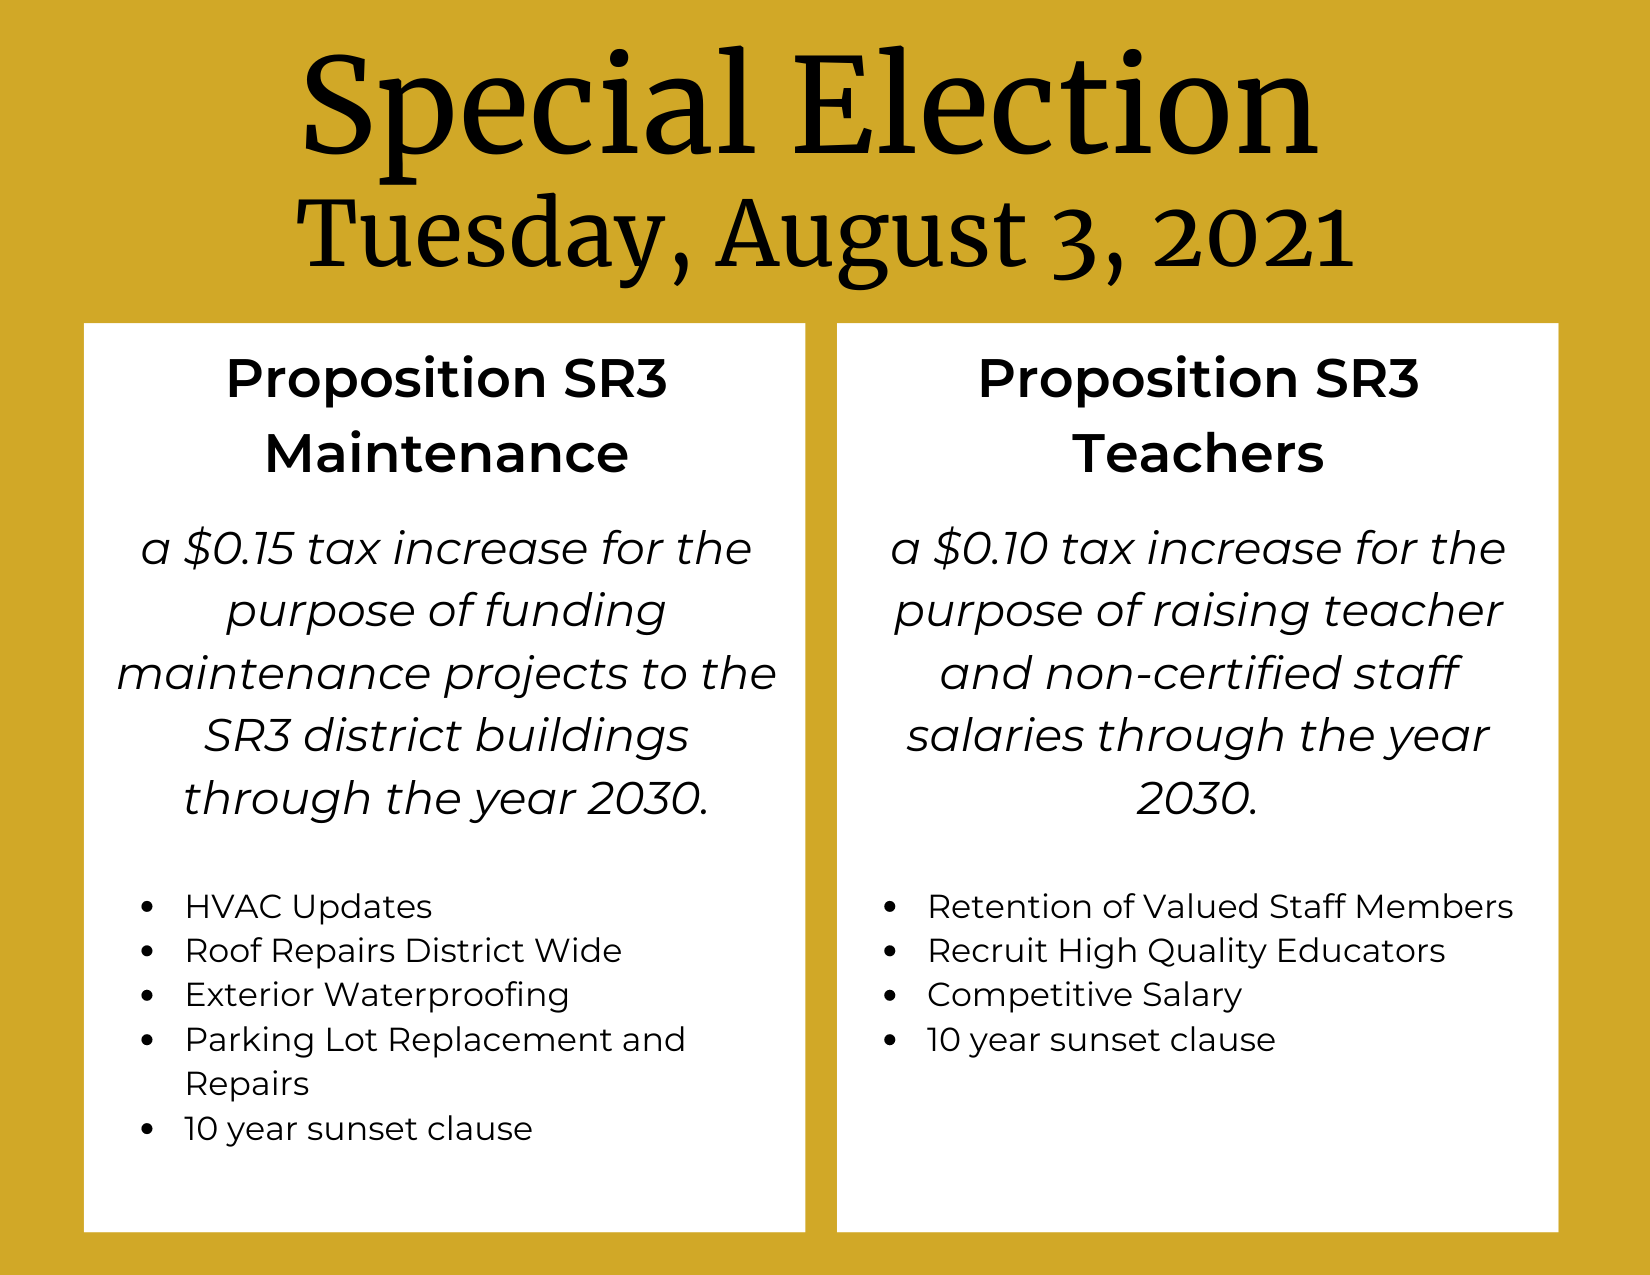 Special Election Tuesday, August 3, 2021